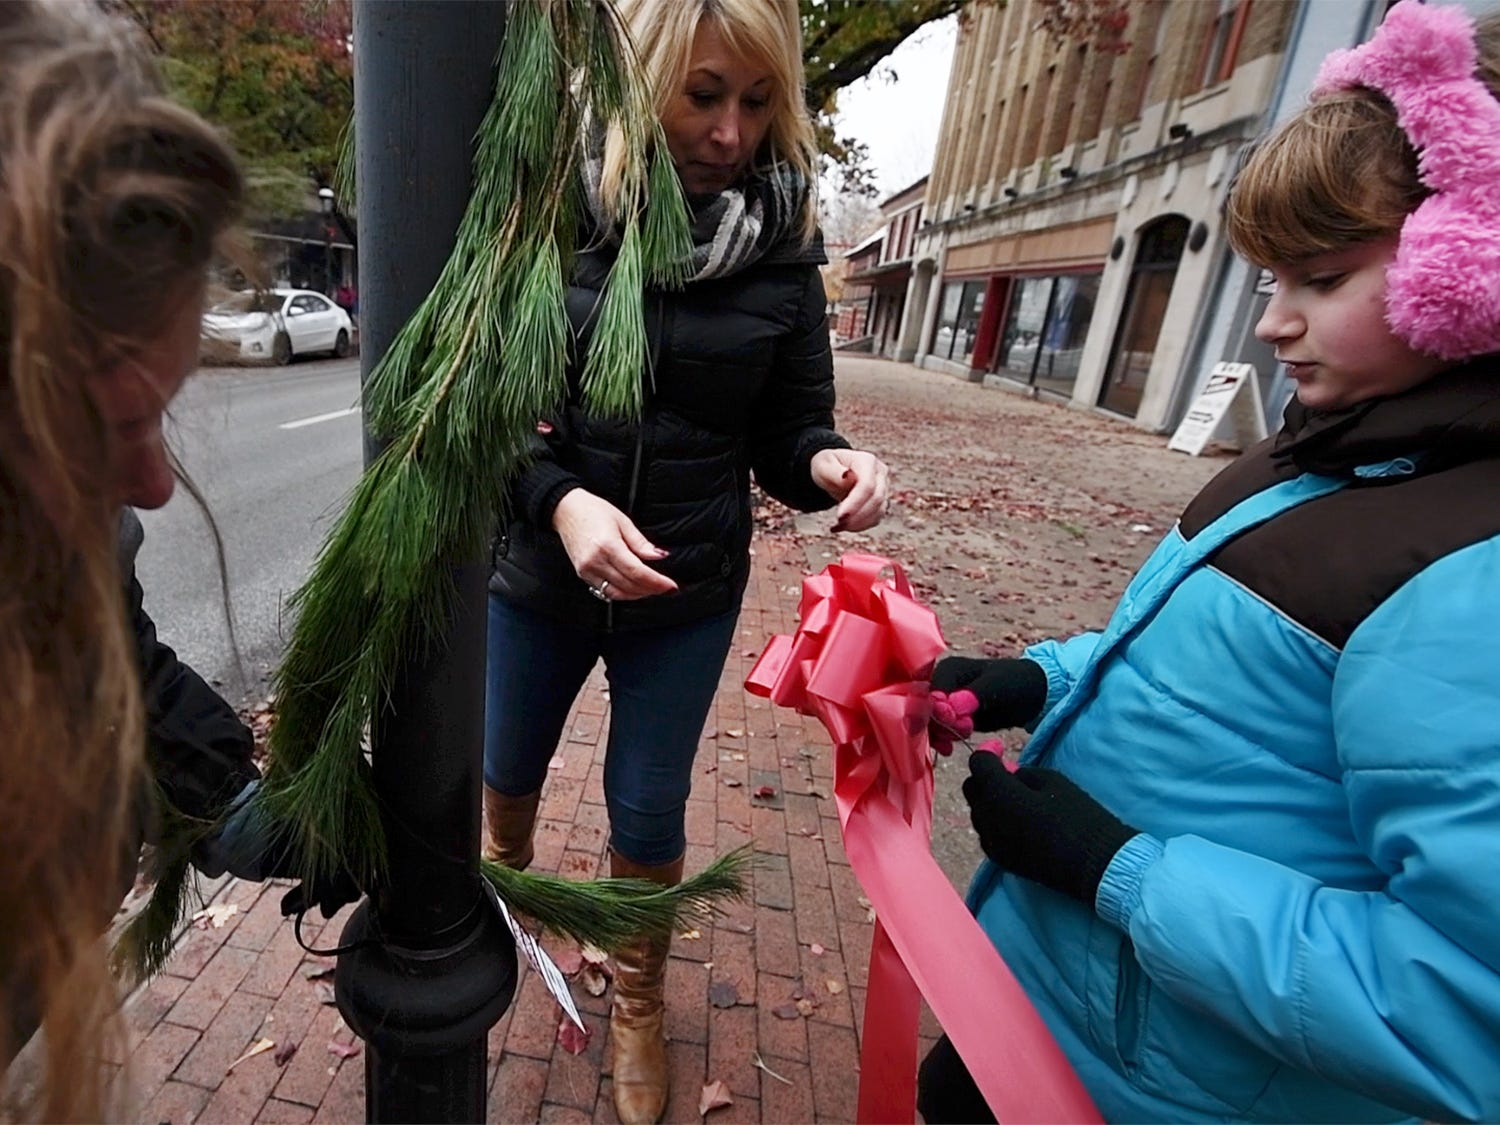 From the left, Michelle Frye, Lori Evans, and Kaylanna White, 11, tie a bow to the the bottom greenery on West Market Street during the Hanging of the Greens Sunday November 18, 2018.